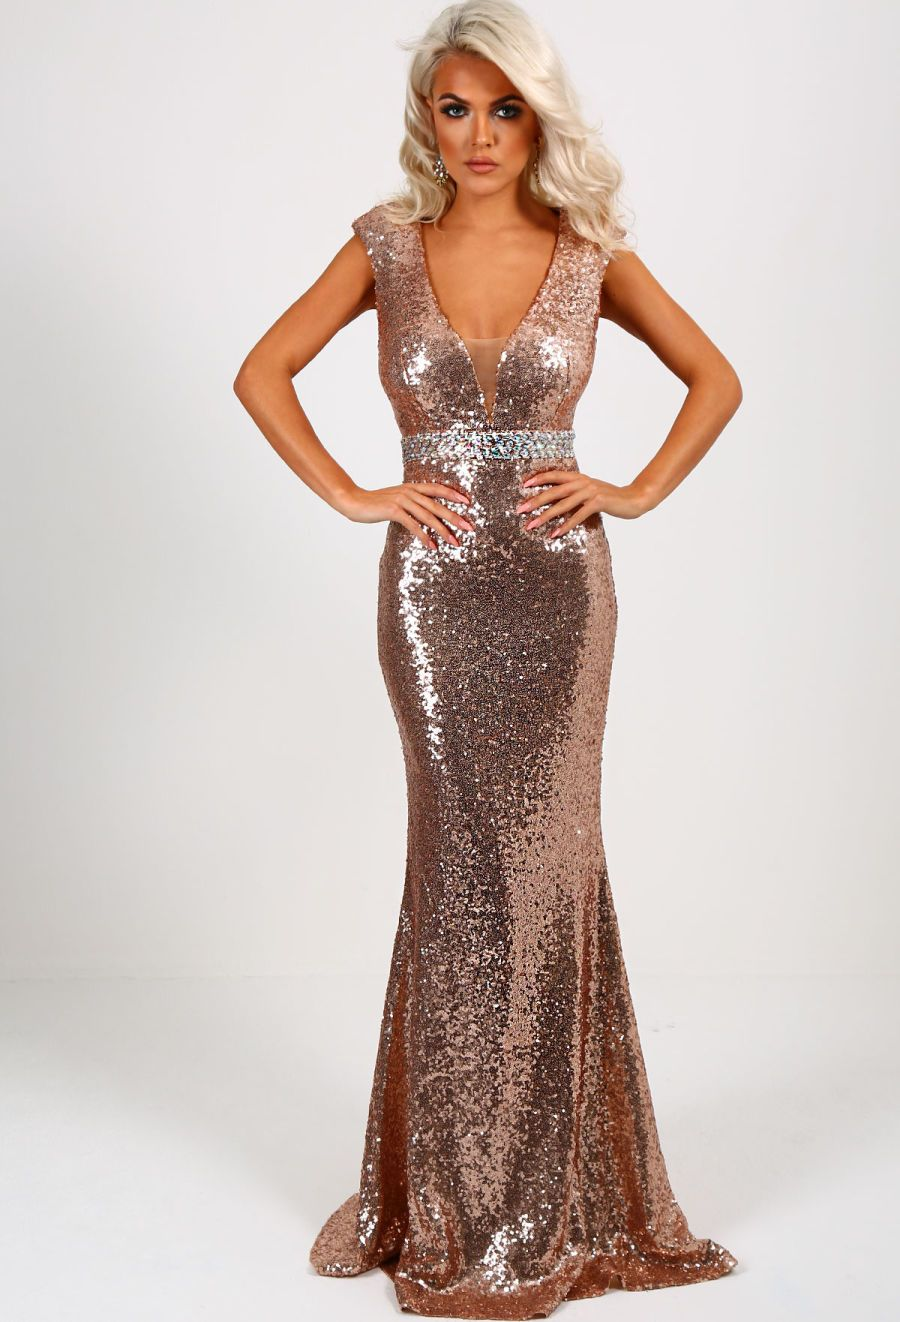 Rose gold sequin maxi dress uk